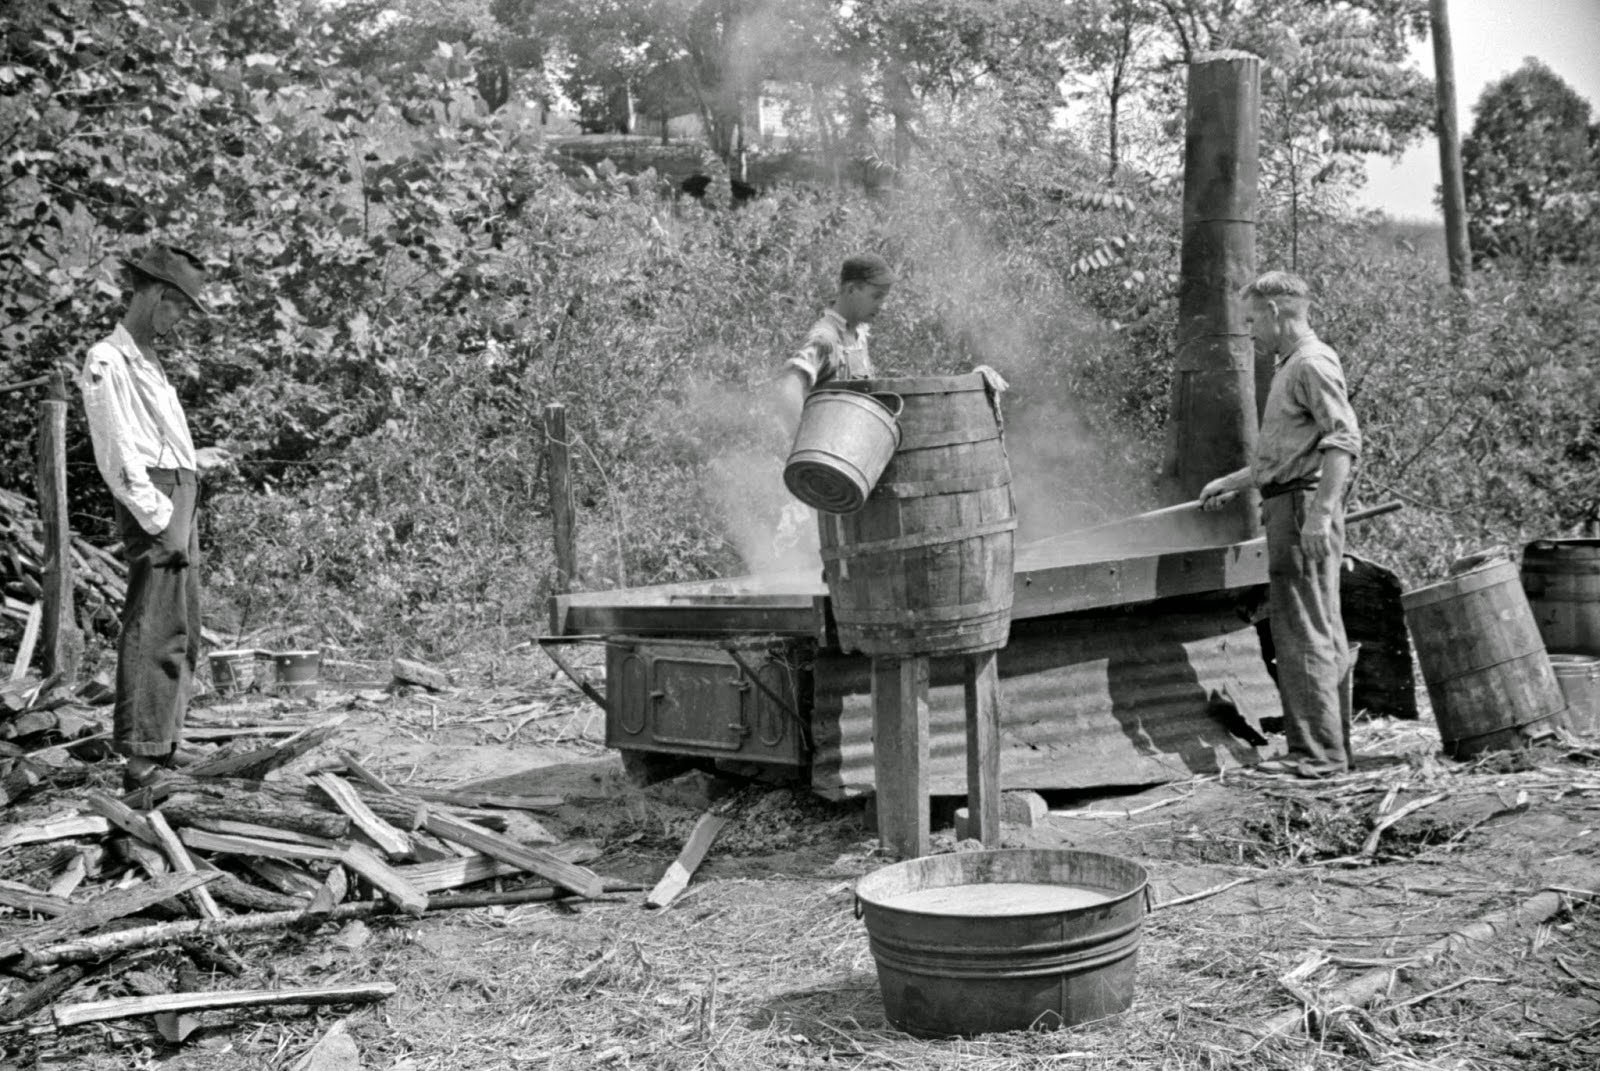 Black and white photos of west virginia coal mine life in 1938